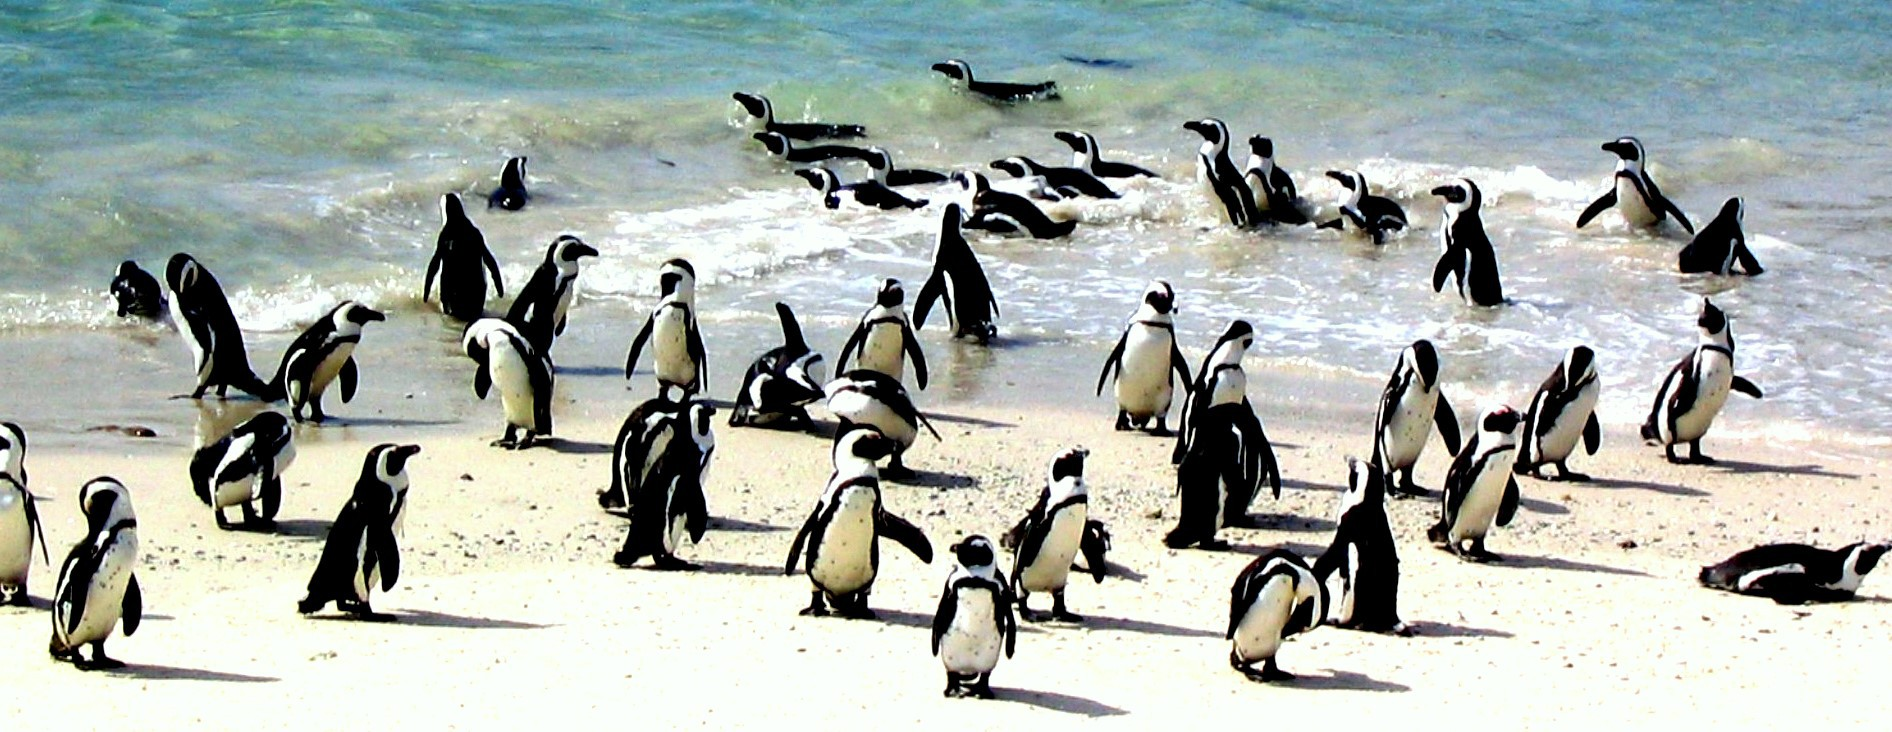 penguins_at_boulder-s_beach-_south_africa.jpg